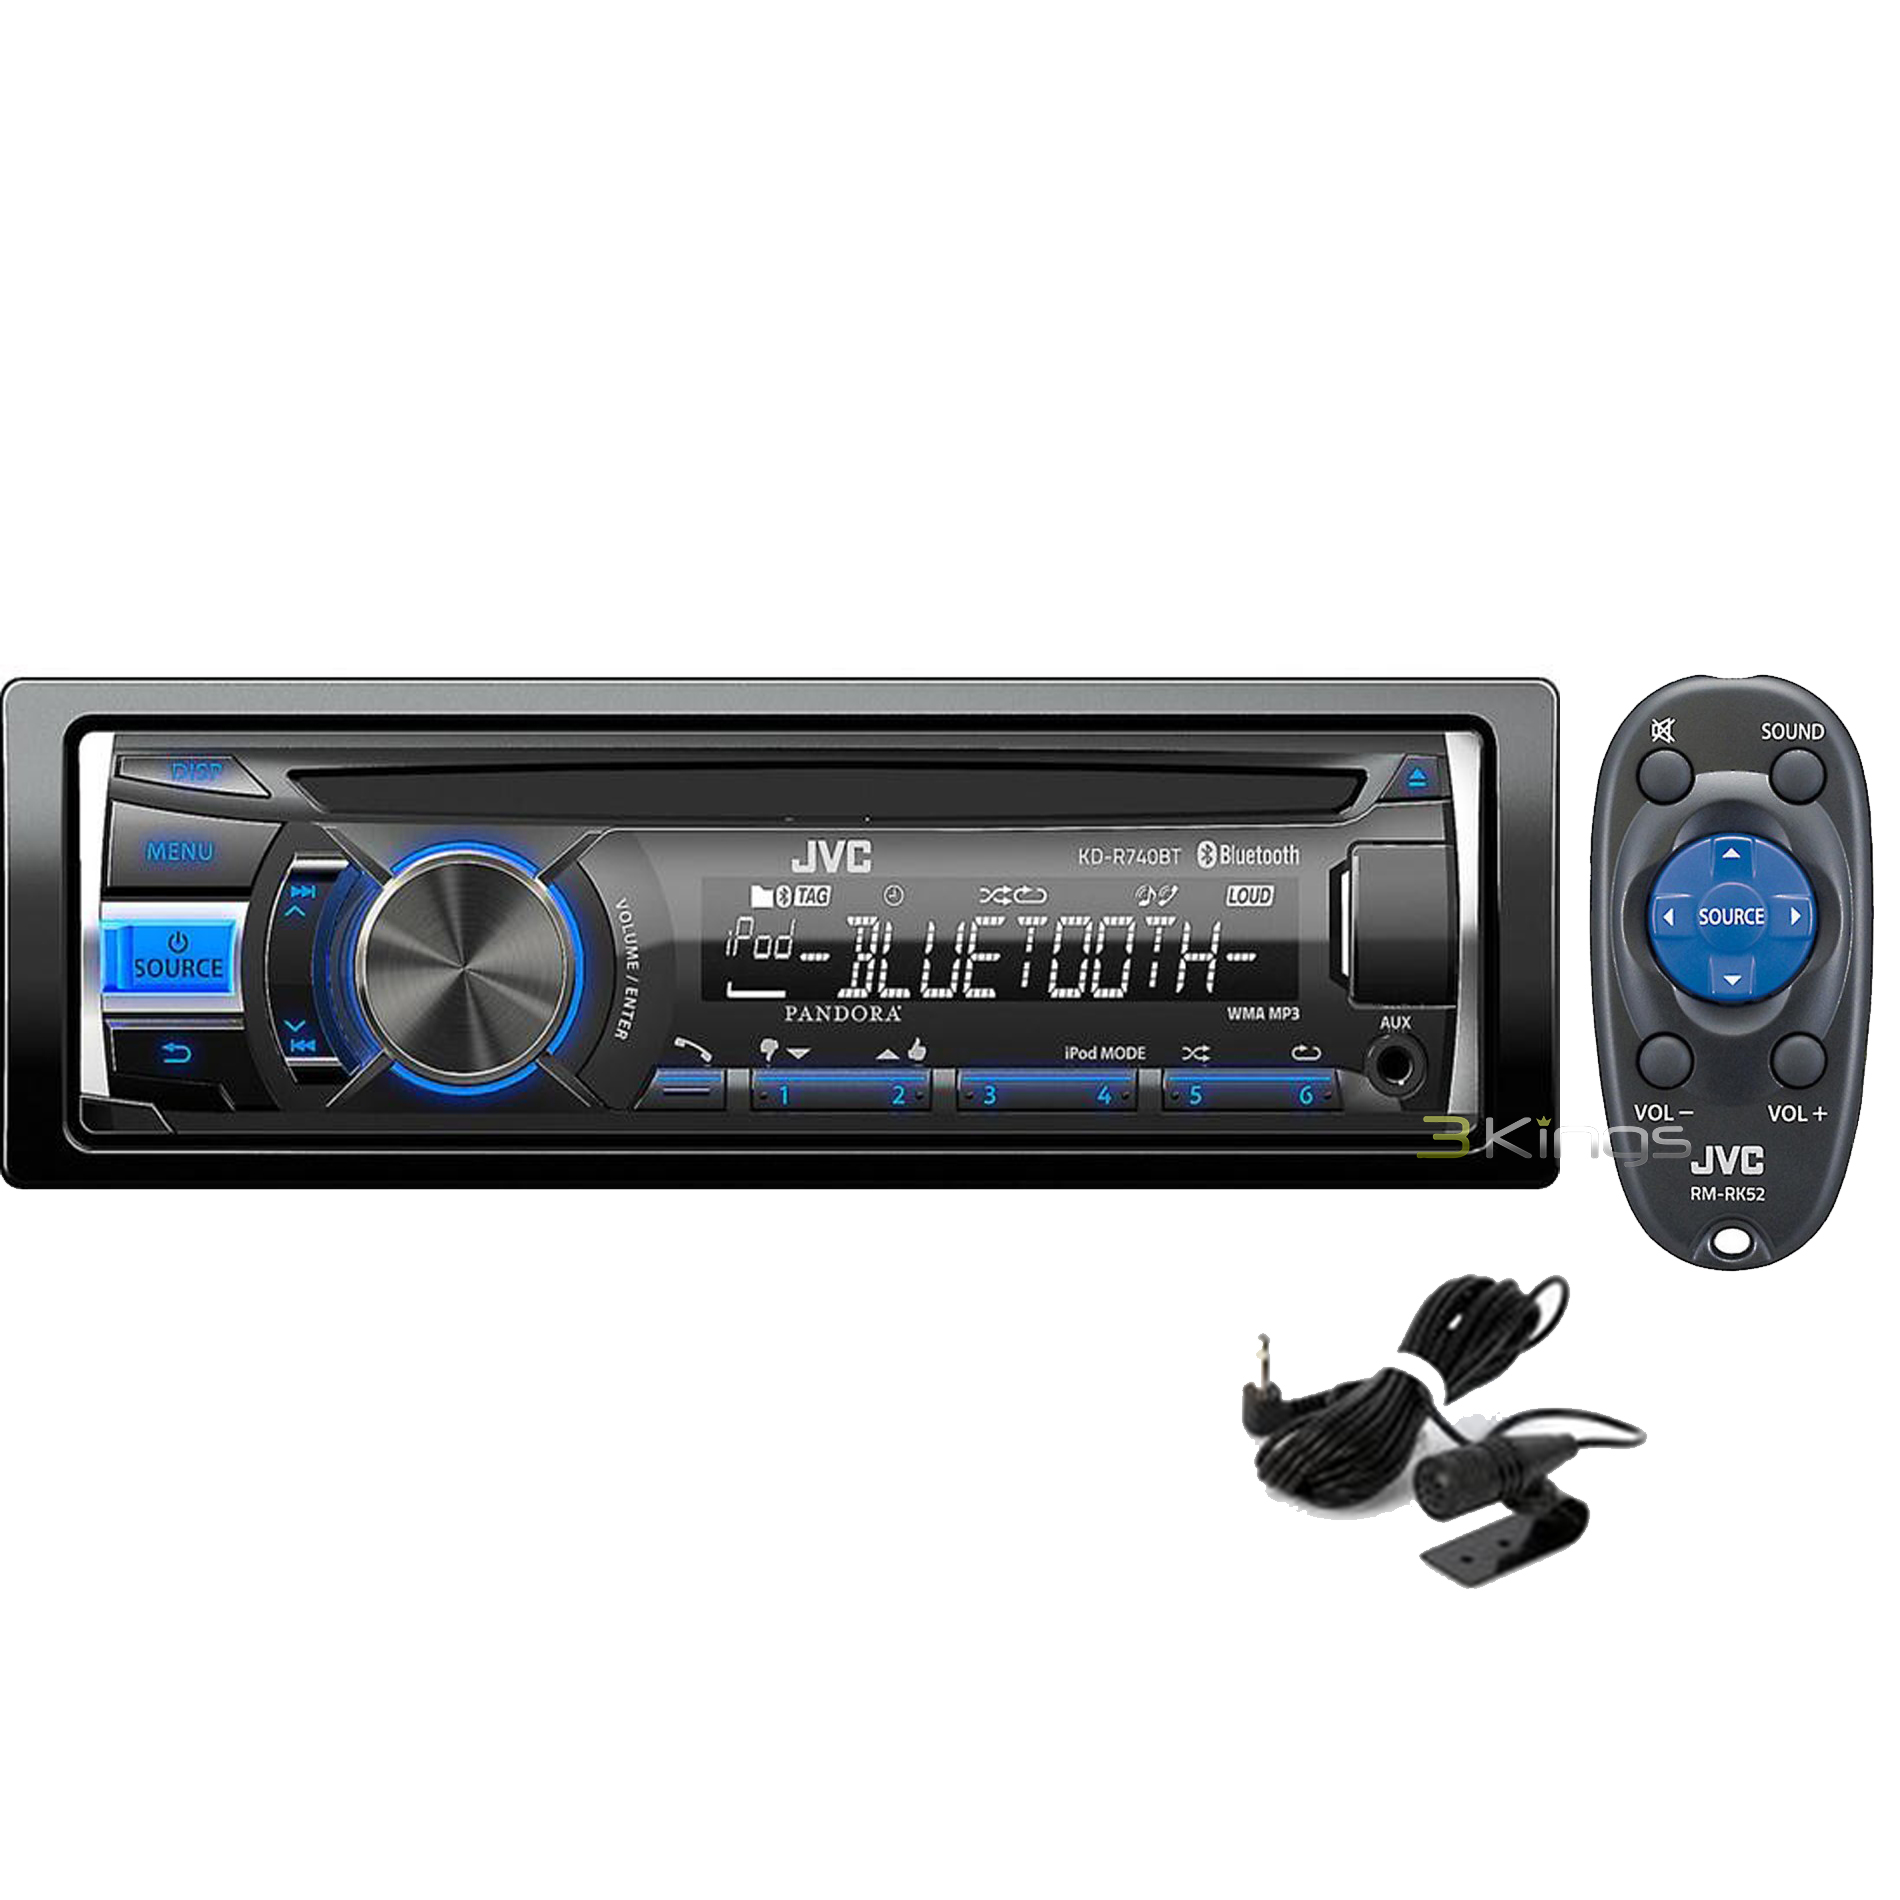 new jvc kd r740bt in dash cd mp3 car stereo receiver w. Black Bedroom Furniture Sets. Home Design Ideas